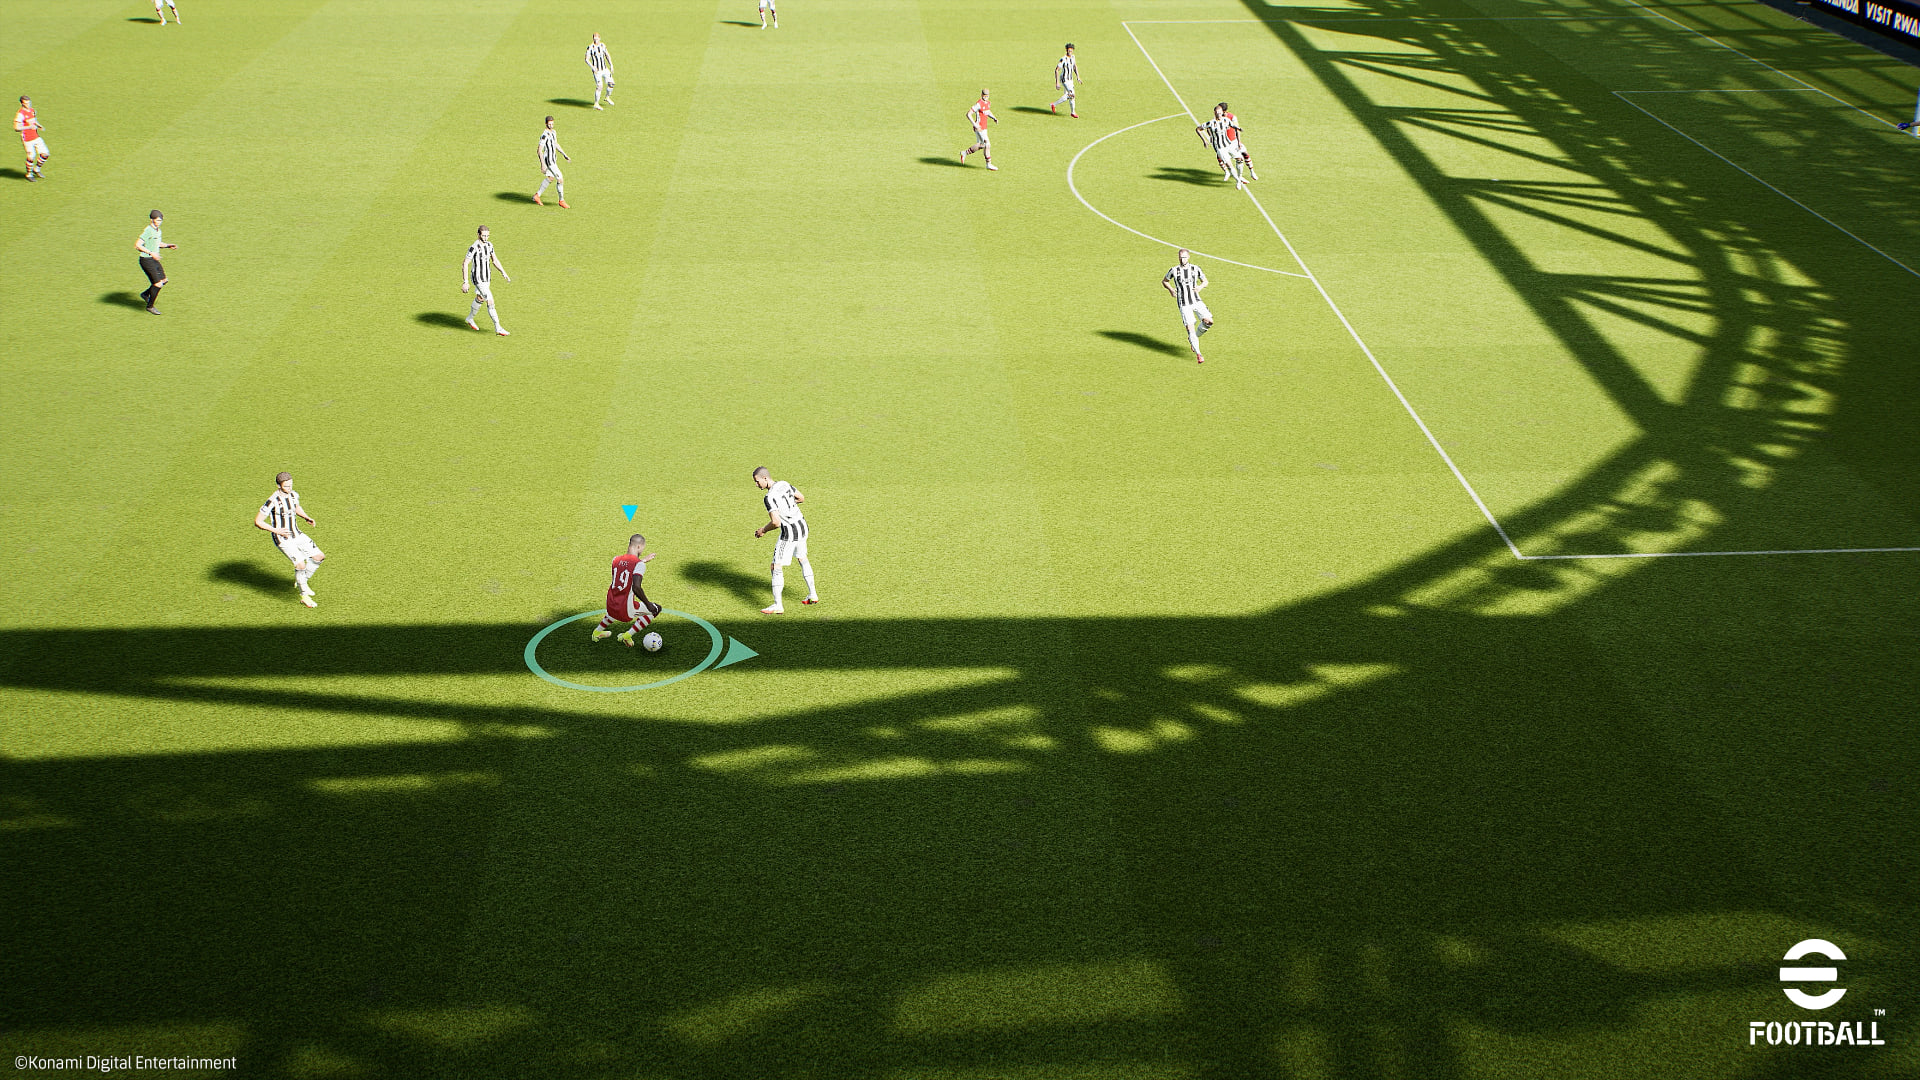 screenshot showing gameplay in eFootball, an attacker in the corner of his opponent's half of the pitch